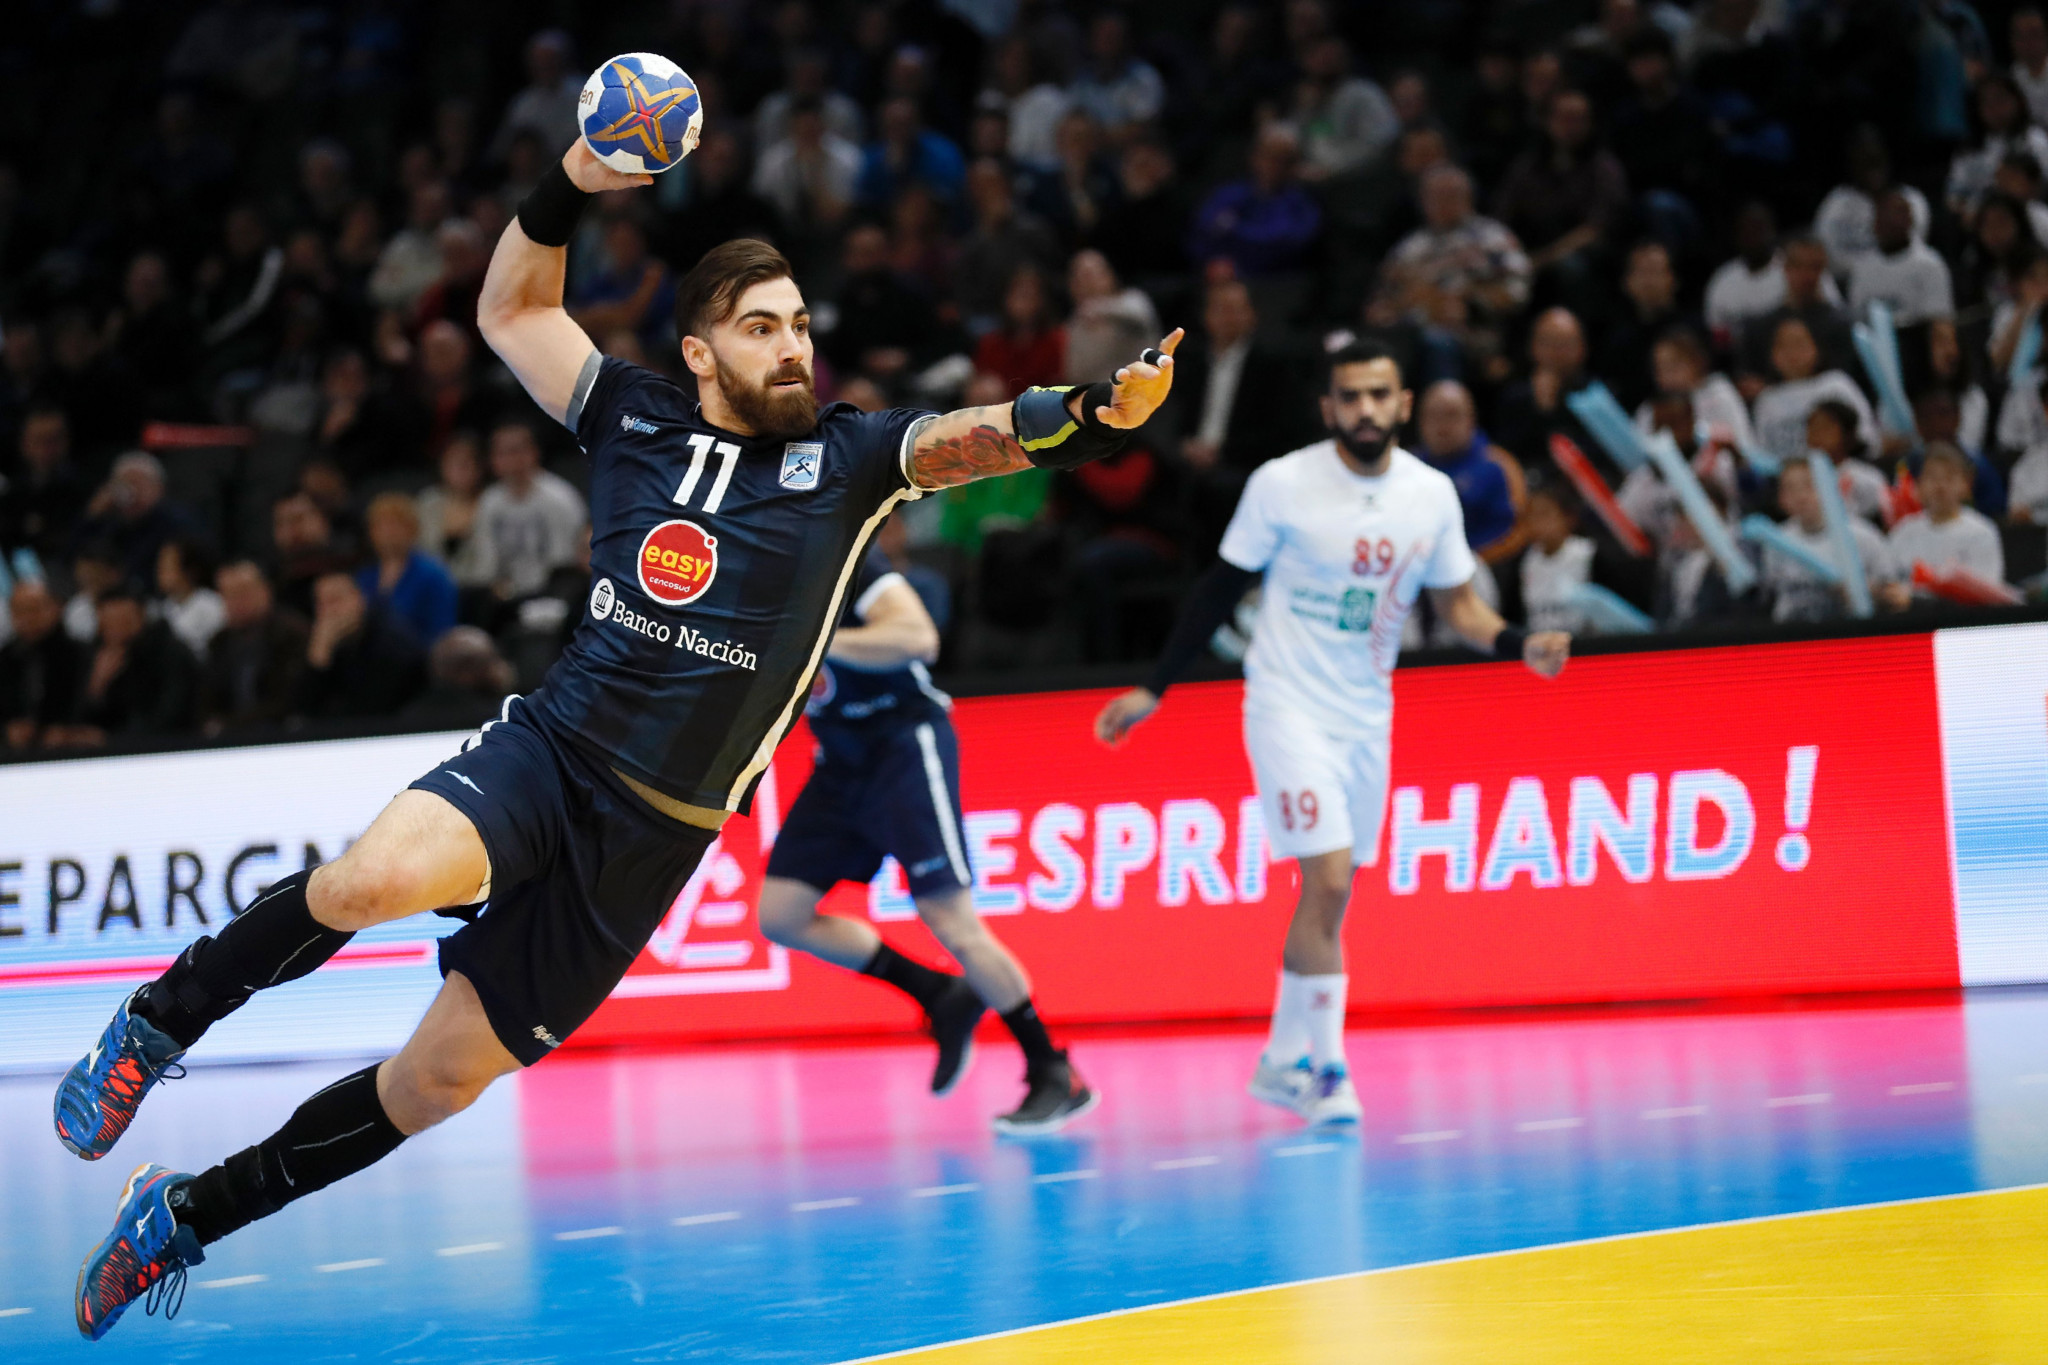 Argentina and Brazil continue perfect starts to Pan American Men's Handball Championship